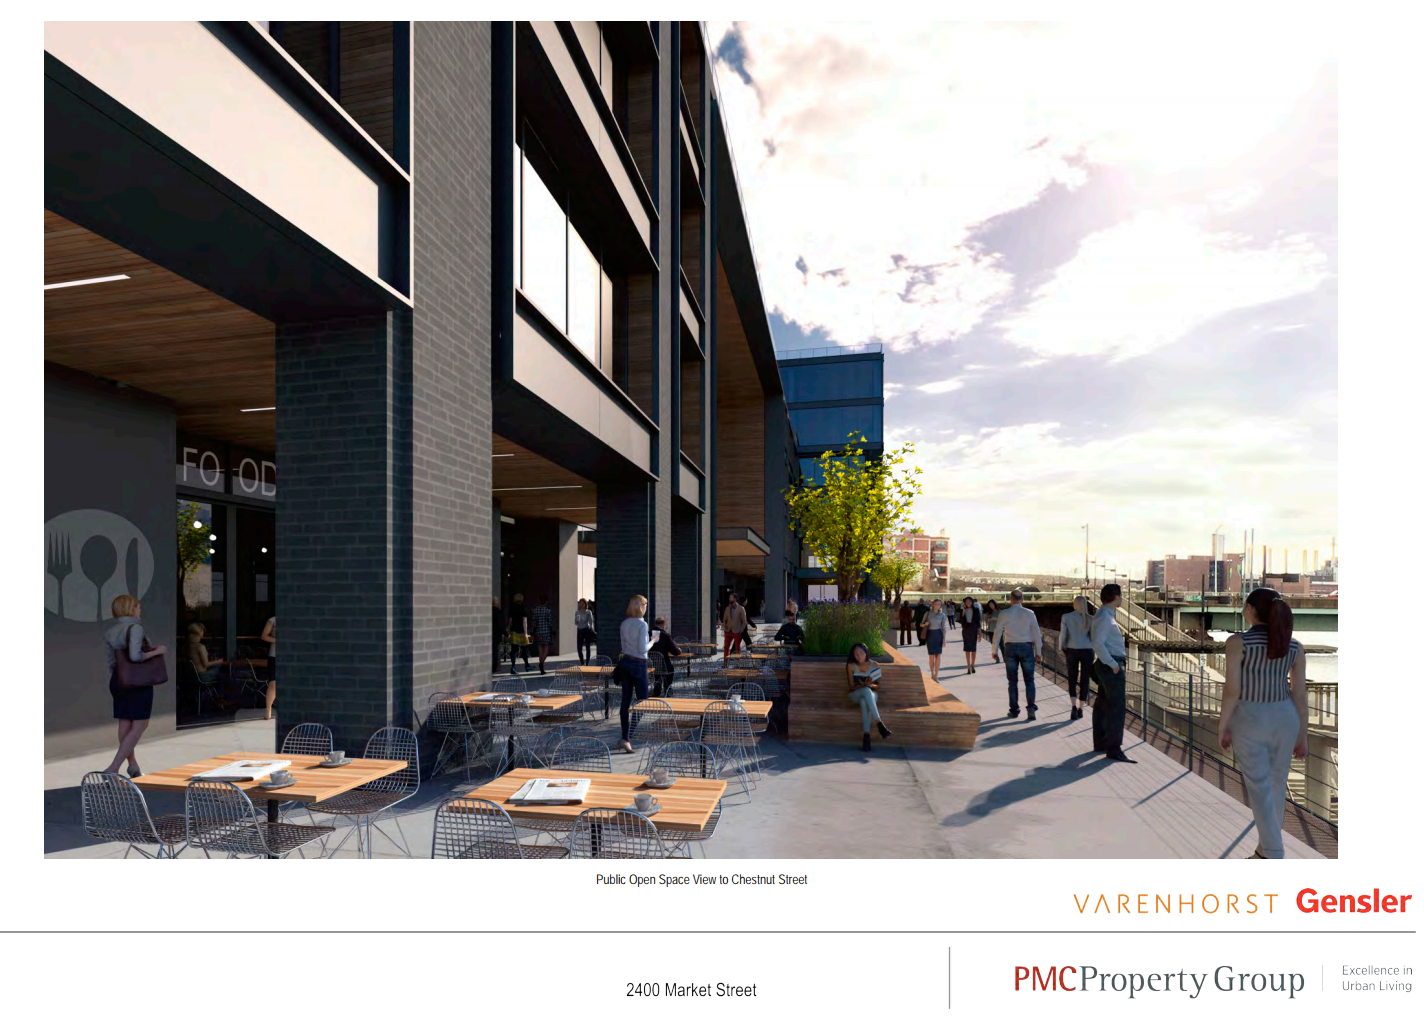 2400 Market: Promenade looking toward Chestnut Street | CDR presentation, November 2016 - Varenhorst / Gensler